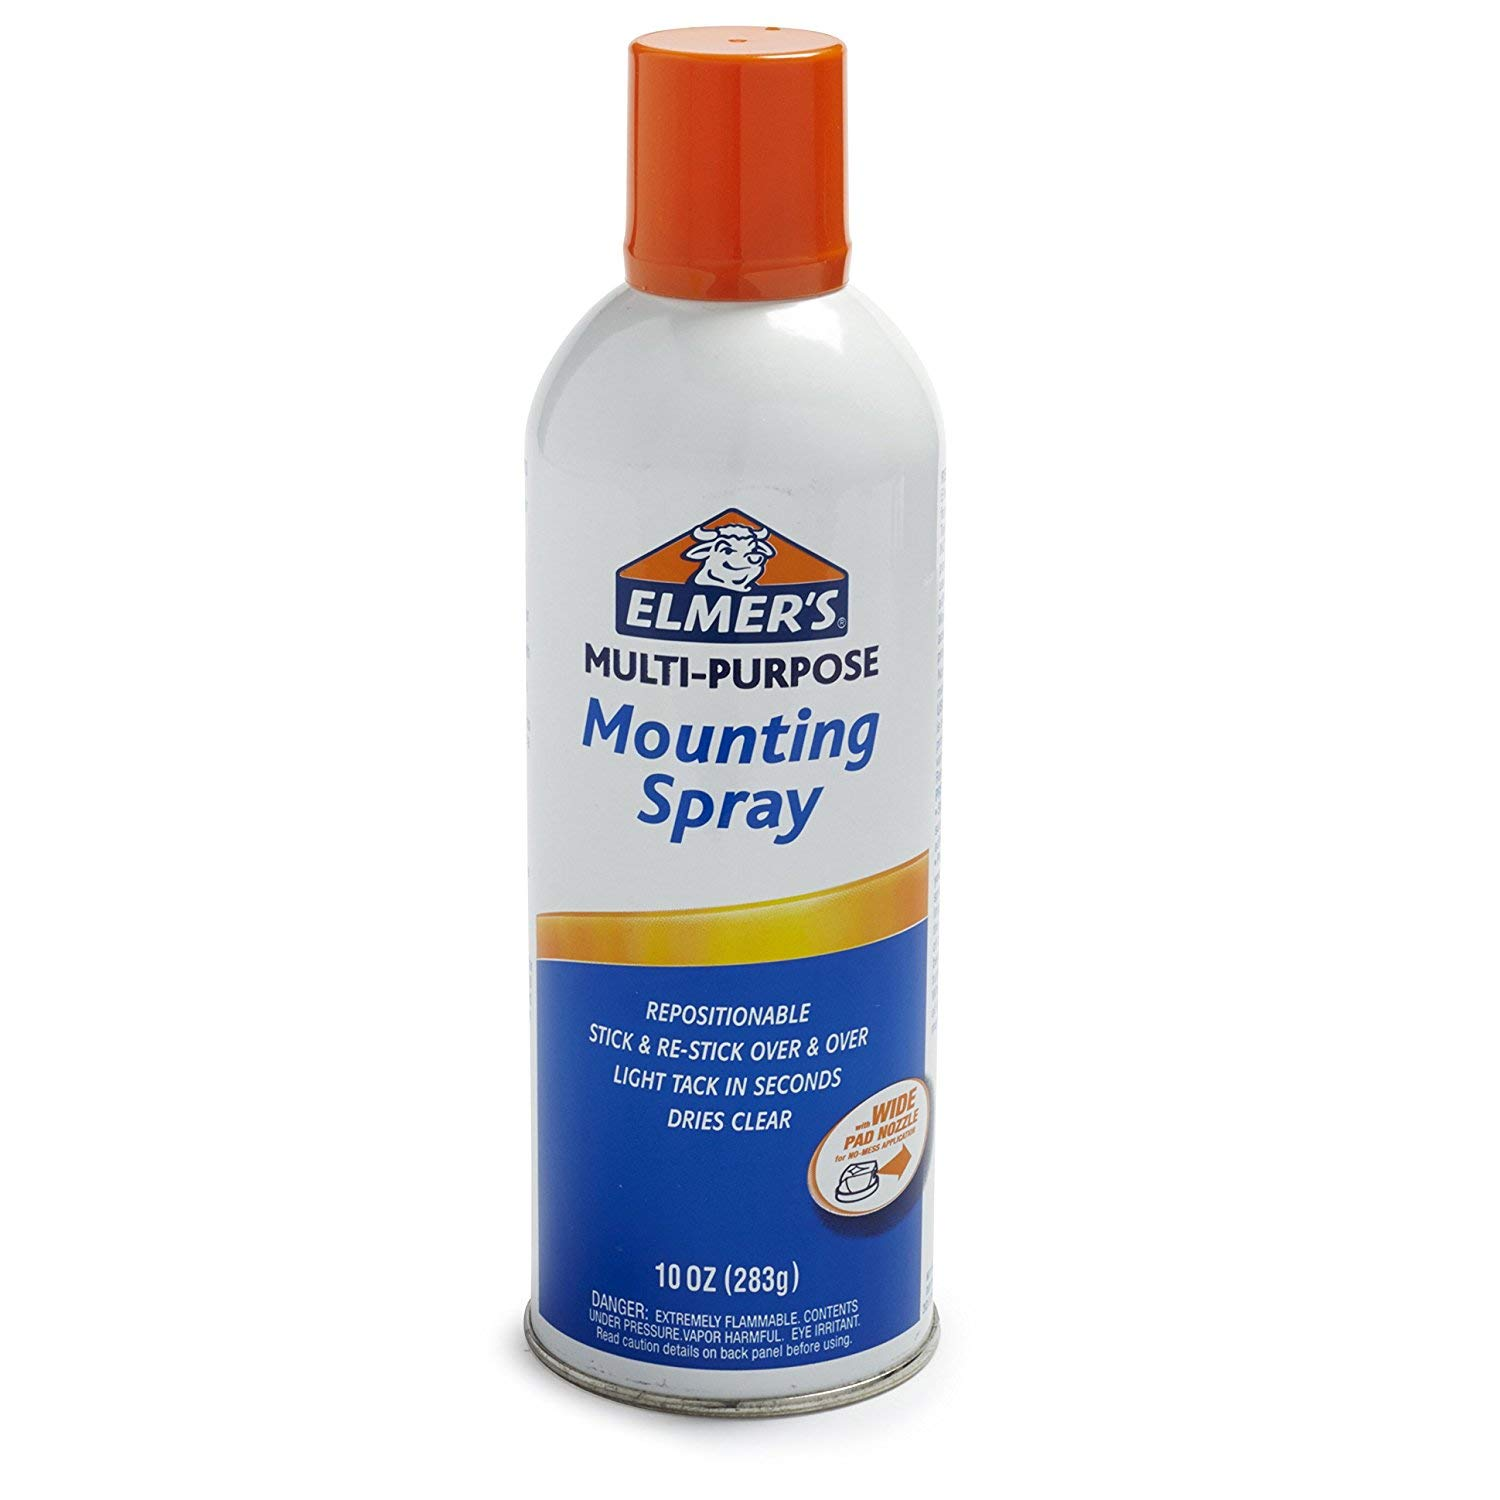 ELMERS Repositionable Mounting Spray Adhesive, 10 Oz, Clear (E454) 2 Pack Elm@er' s